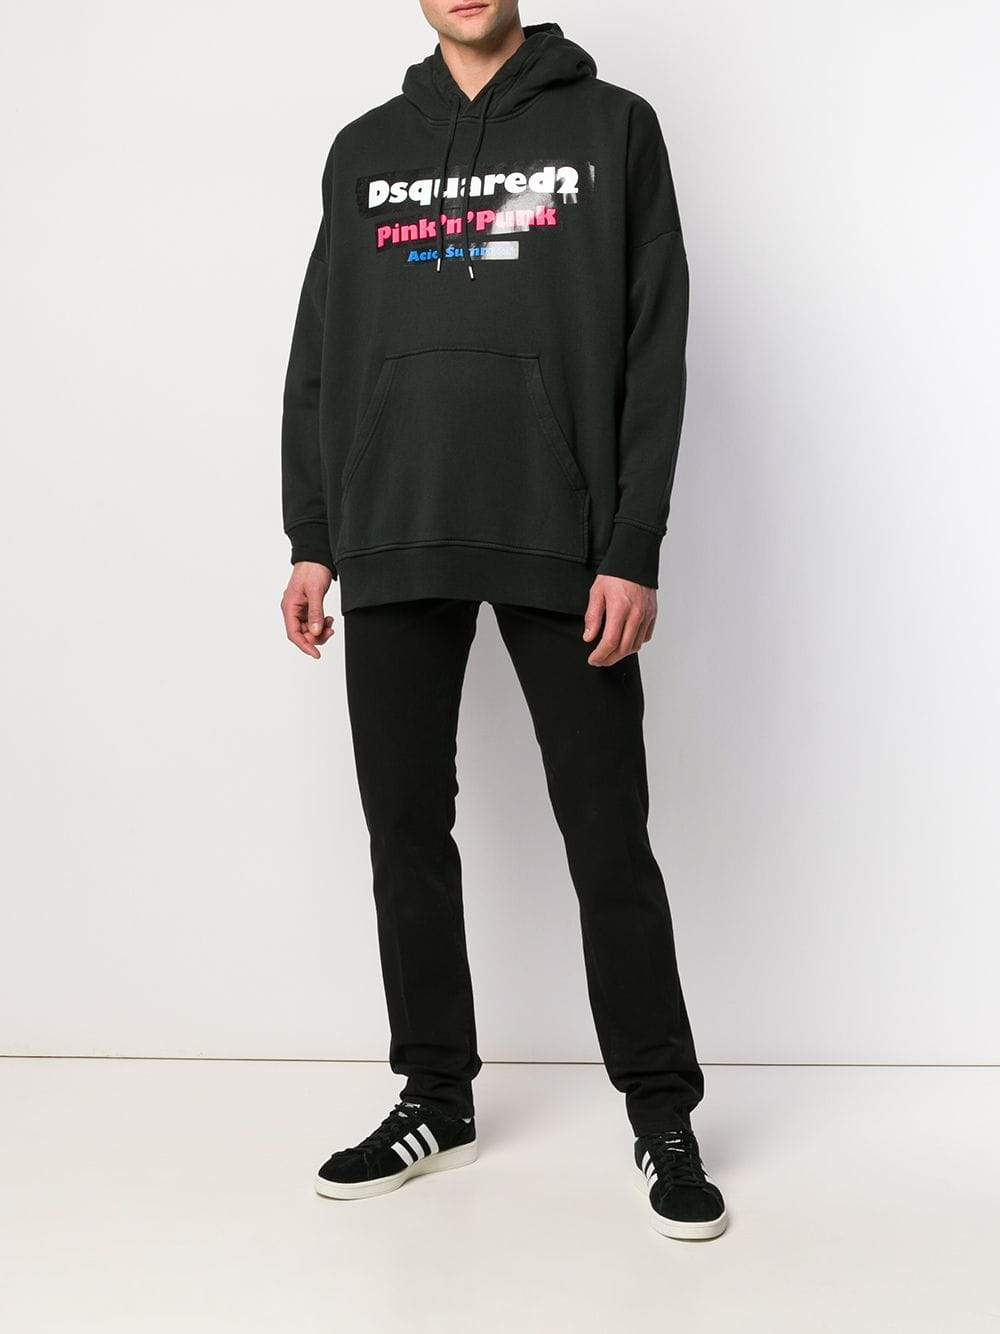 Dsquared2 Oversized Hooded Sweatshirt | Dsquared2